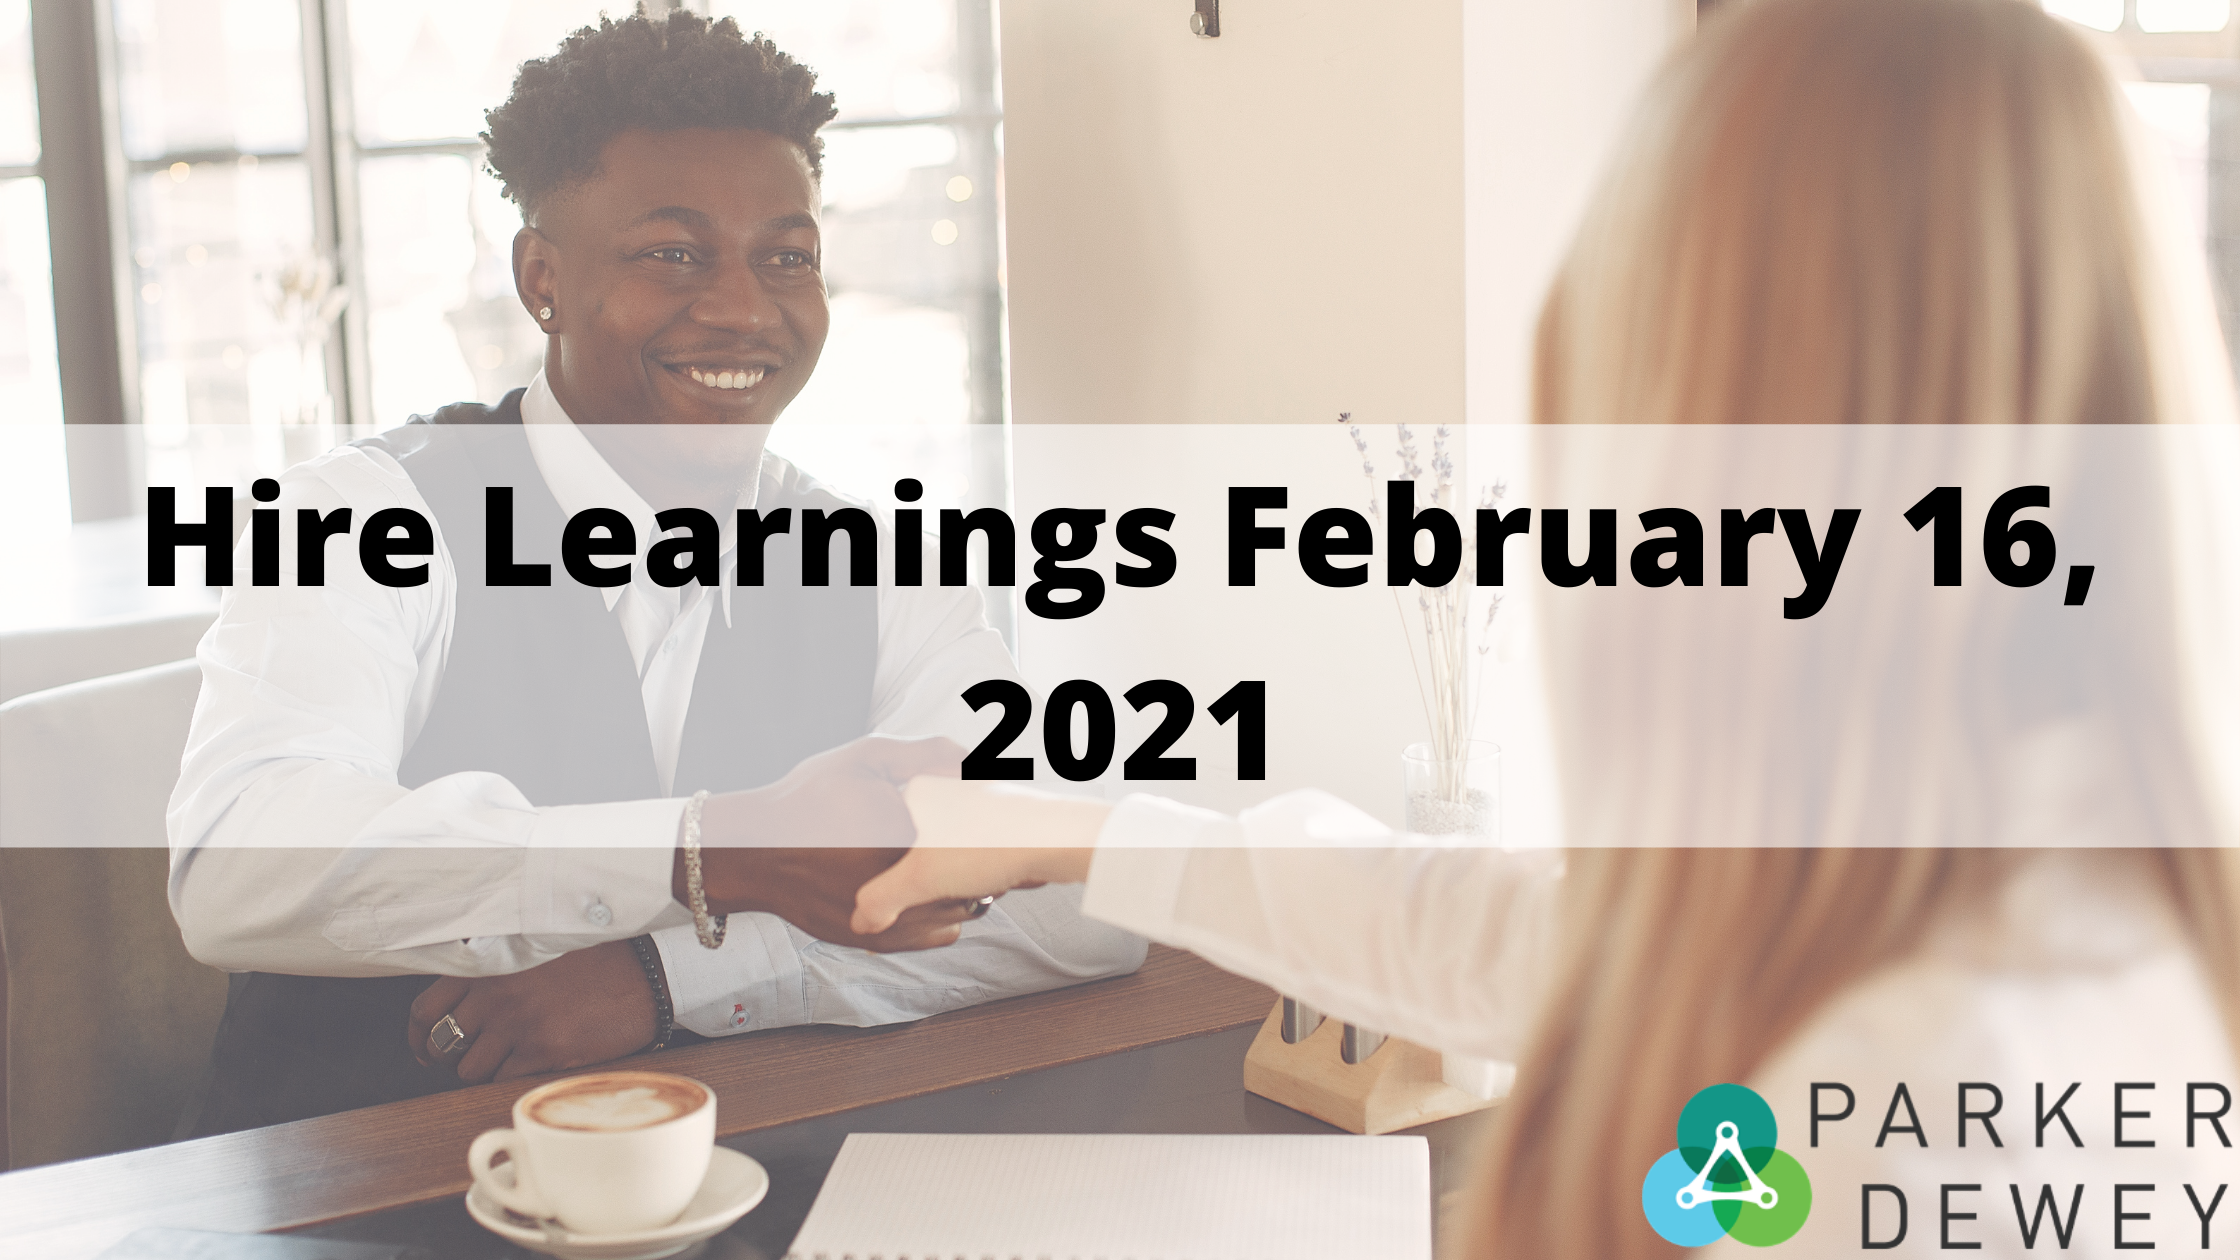 Hire Learnings February 16, 2021